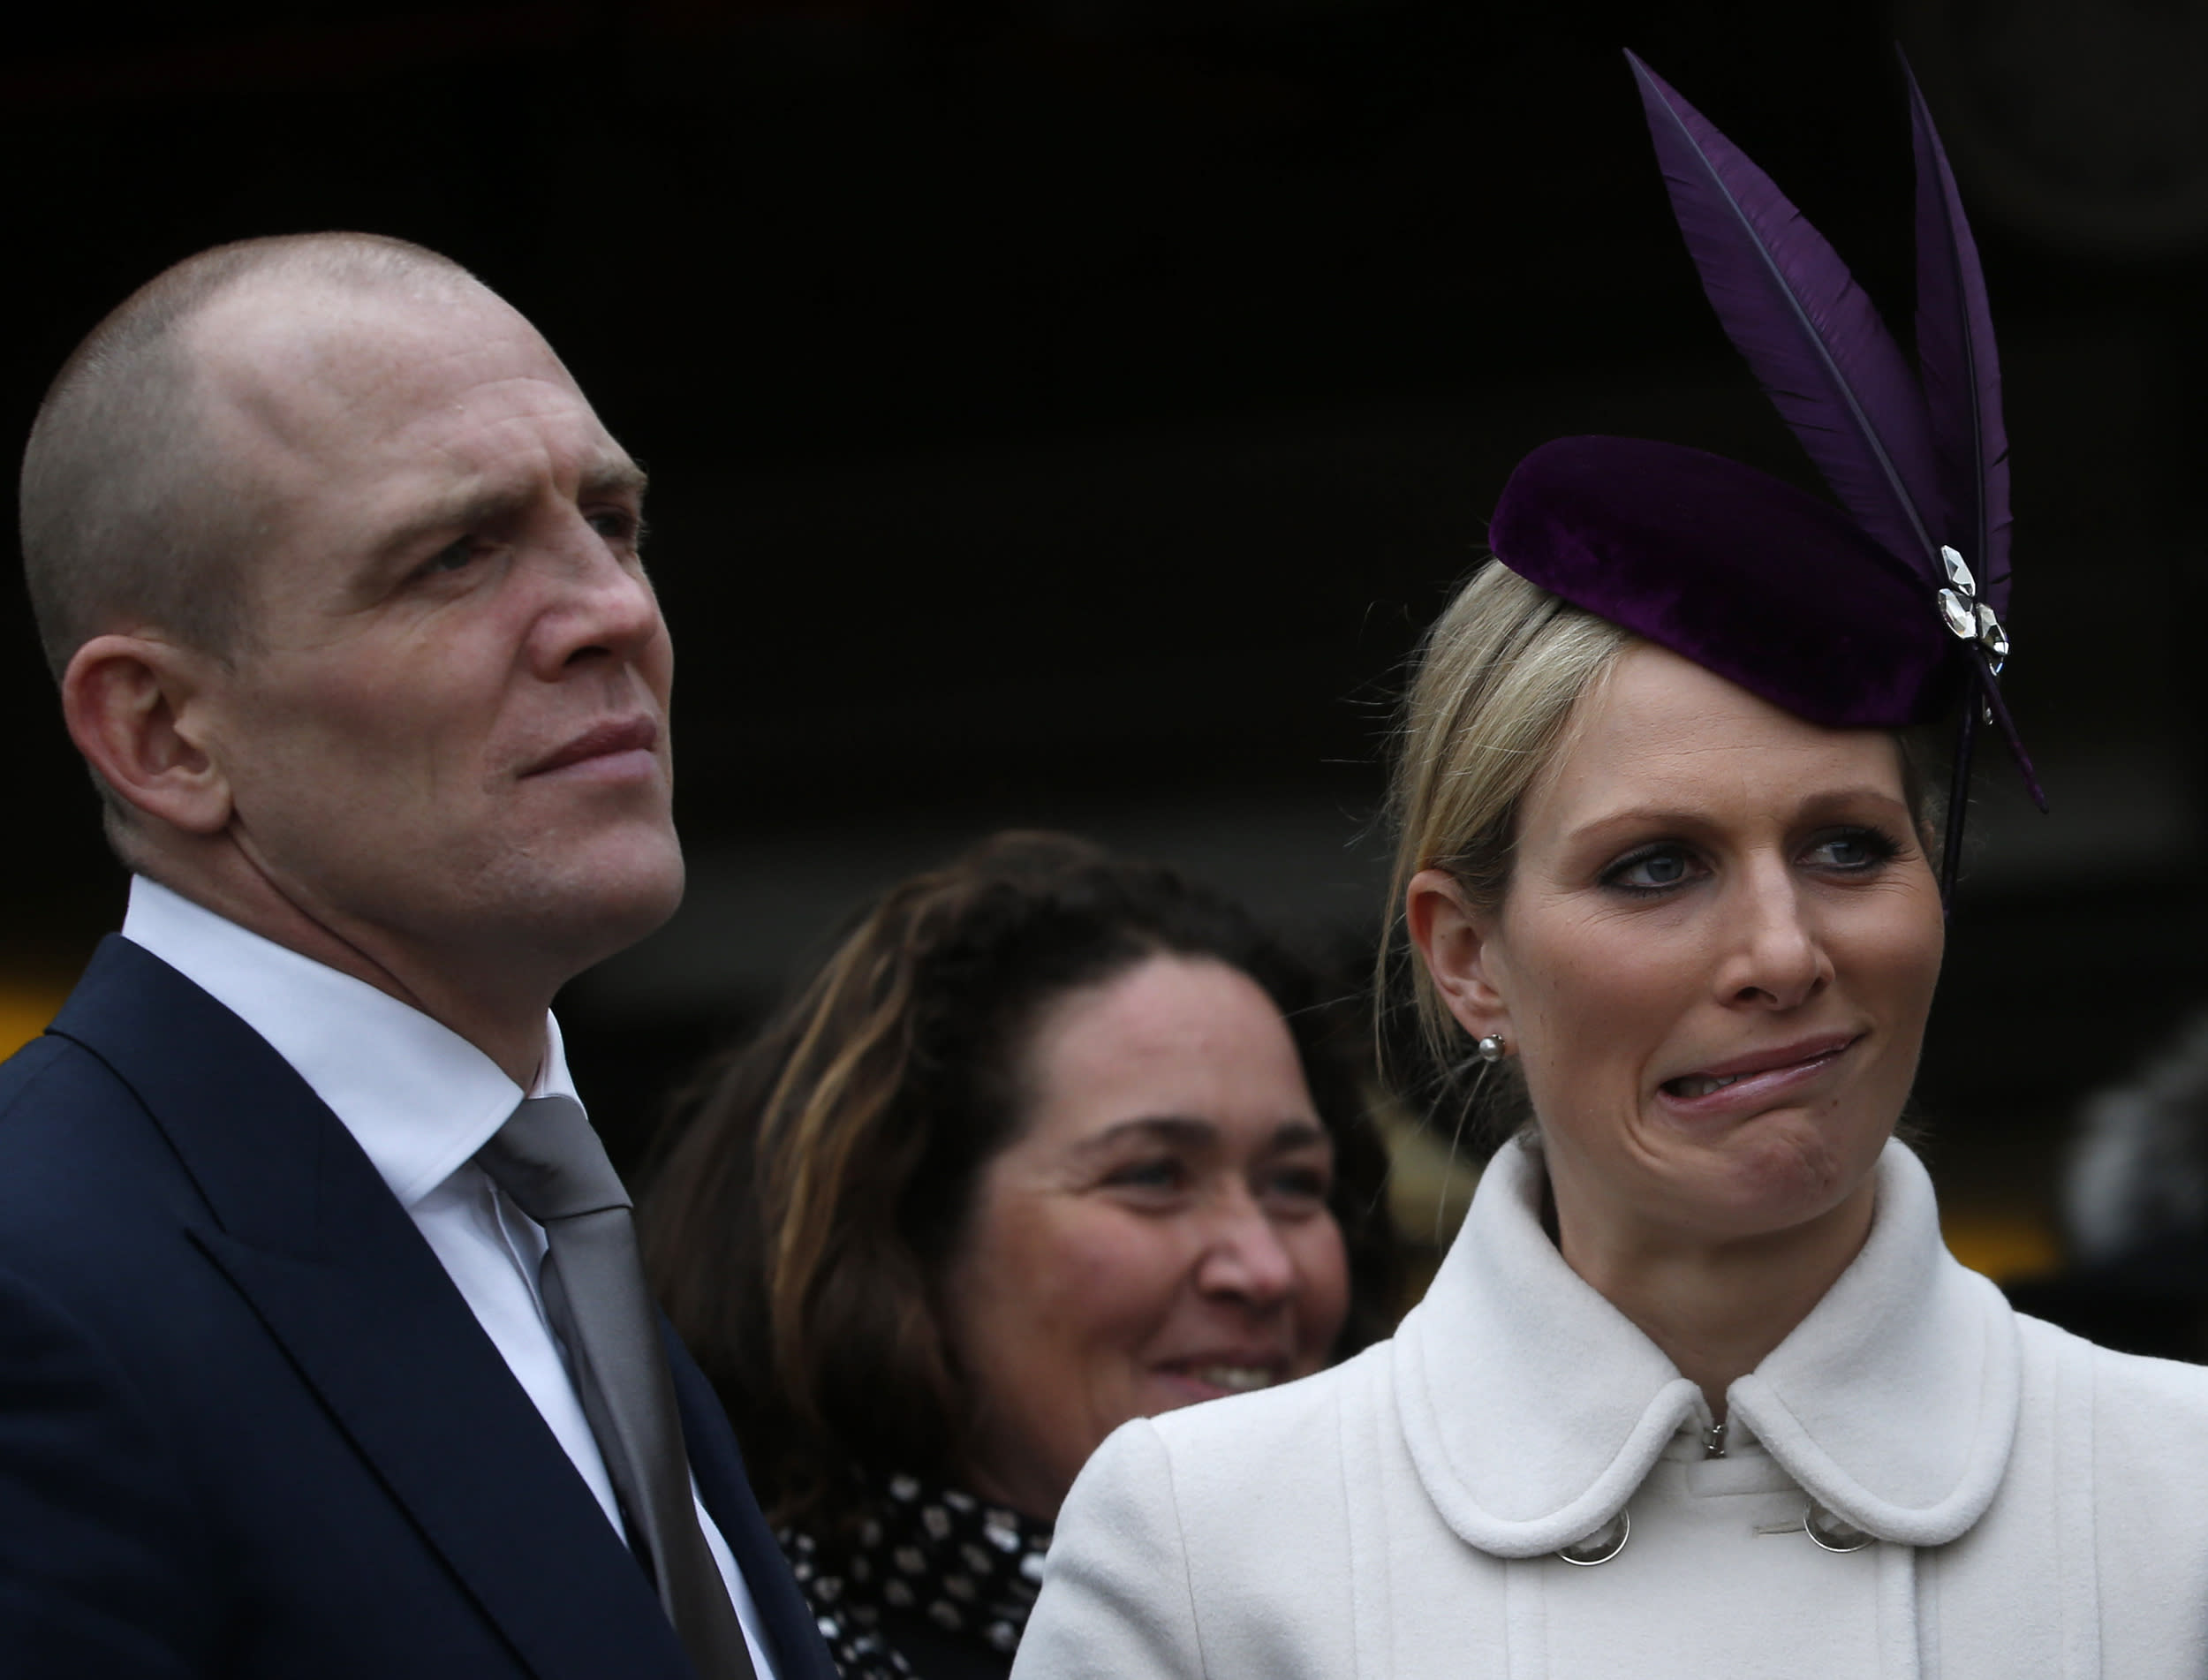 Britain's Zara Phillips (R) reacts while talking to Chanelle McCoy (unseen), the wife of jockey Tony McCoy, as her husband Mike Tindall stands by her in the unsaddling enclosure at the Cheltenham Festival horse racing meet in Gloucestershire, western England March 12, 2013. REUTERS/Eddie Keogh (BRITAIN - Tags: SPORT HORSE RACING ROYALS)